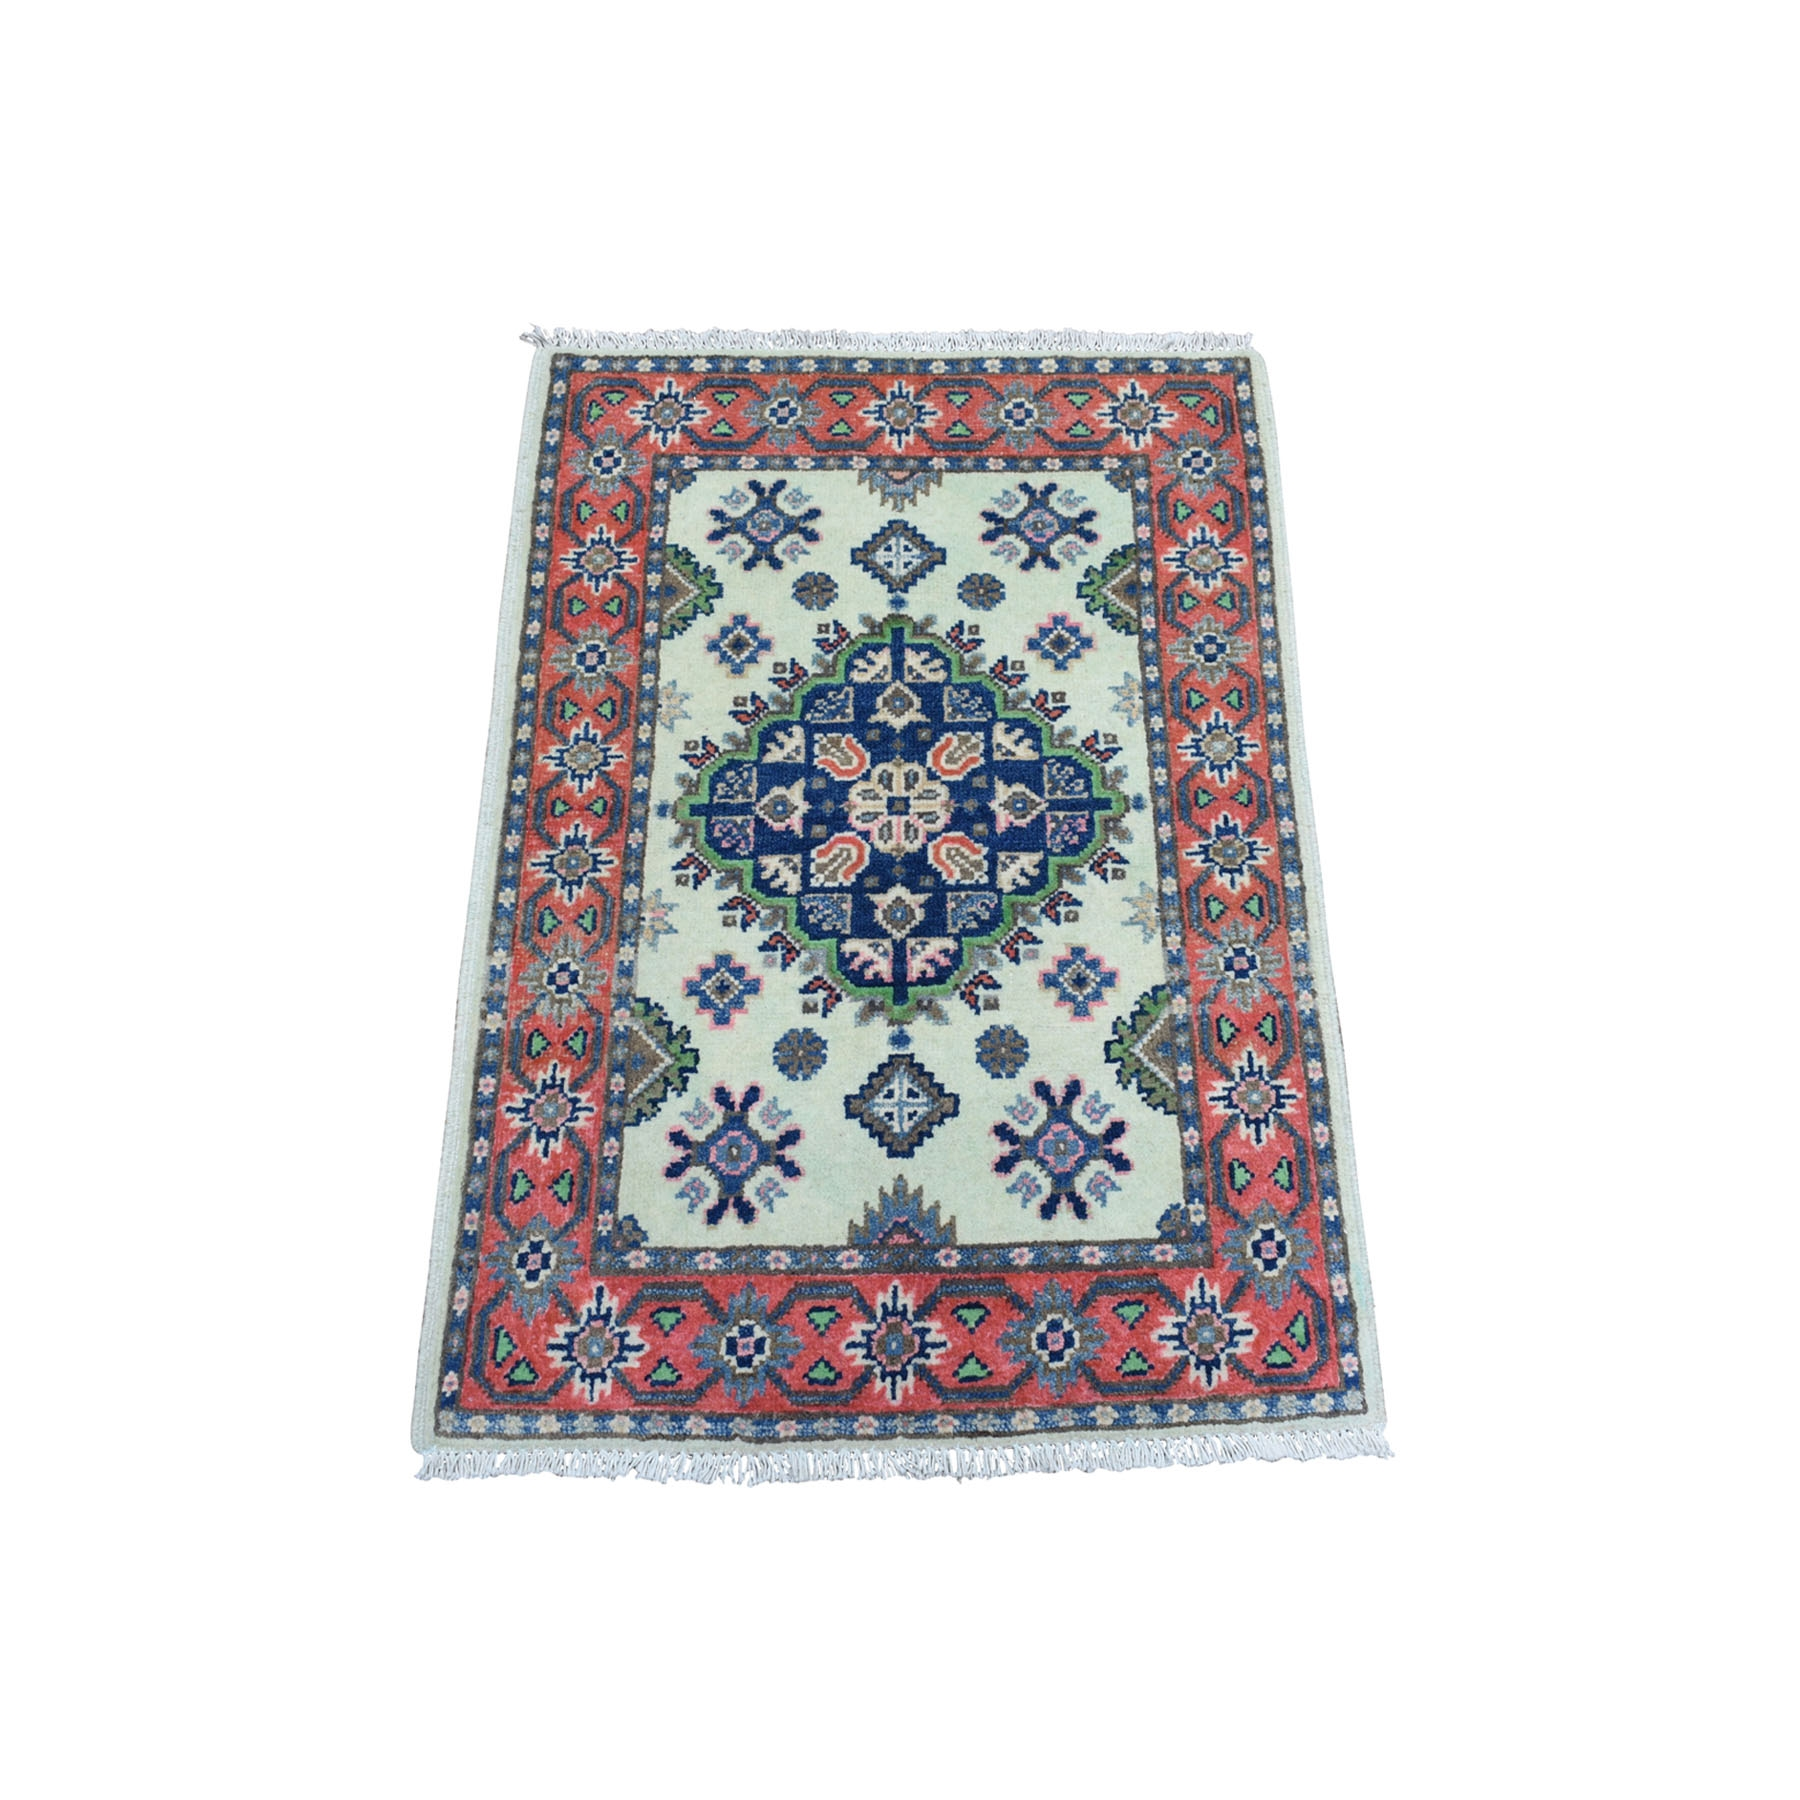 2'X3' Colorful Ivory Fusion Kazak Pure Wool Hand Knotted Oriental Rug moaeda7d